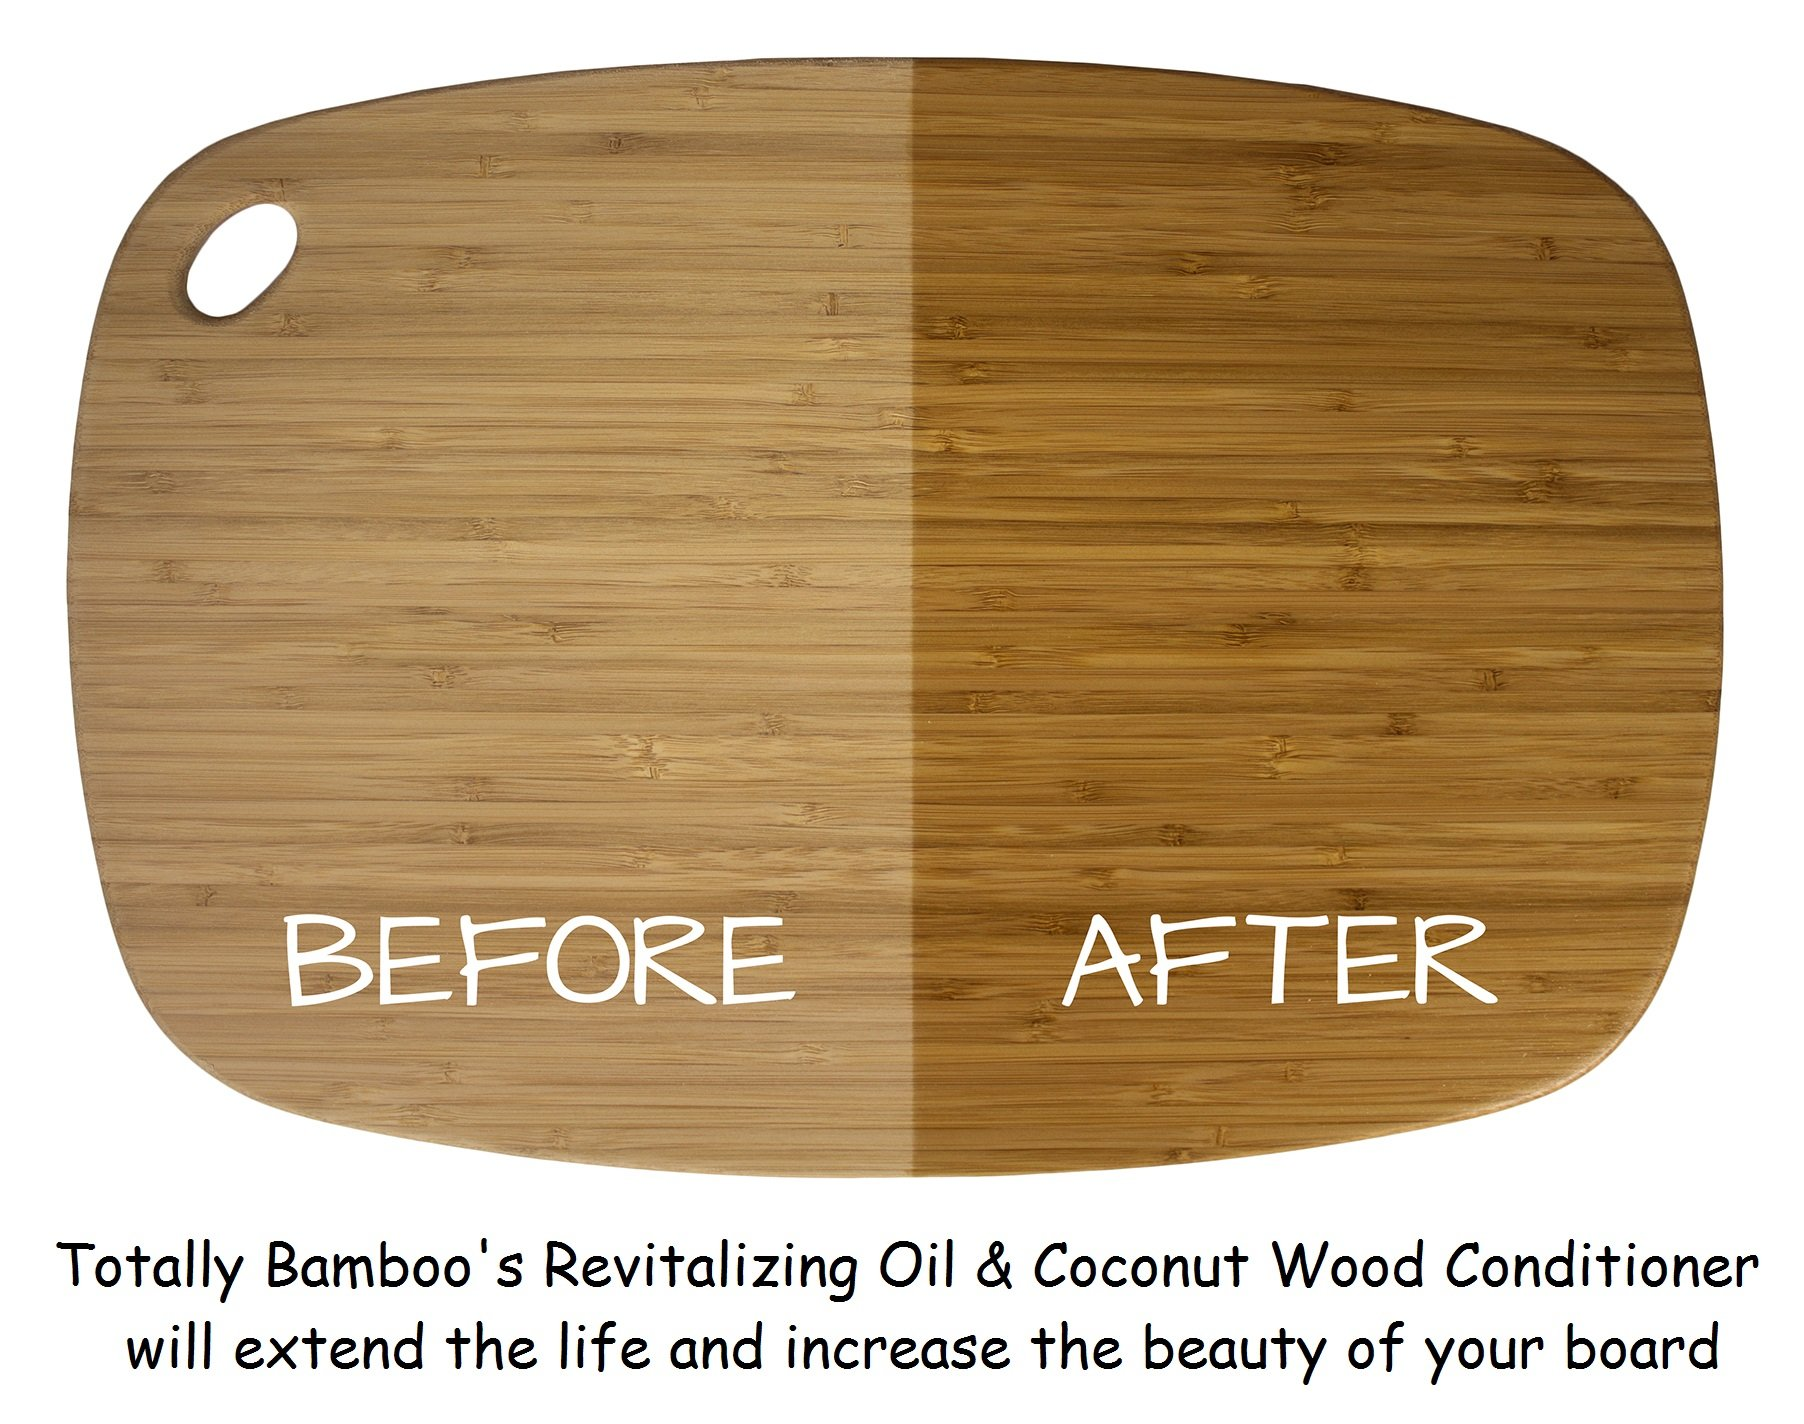 Totally Bamboo Revitalizing & Transformative Mineral Oil, Bamboo and Hardwood cutting, serving boards, counter tops & butcher blocks + SET OF 2 (8 oz. Bottles) by Totally Bamboo